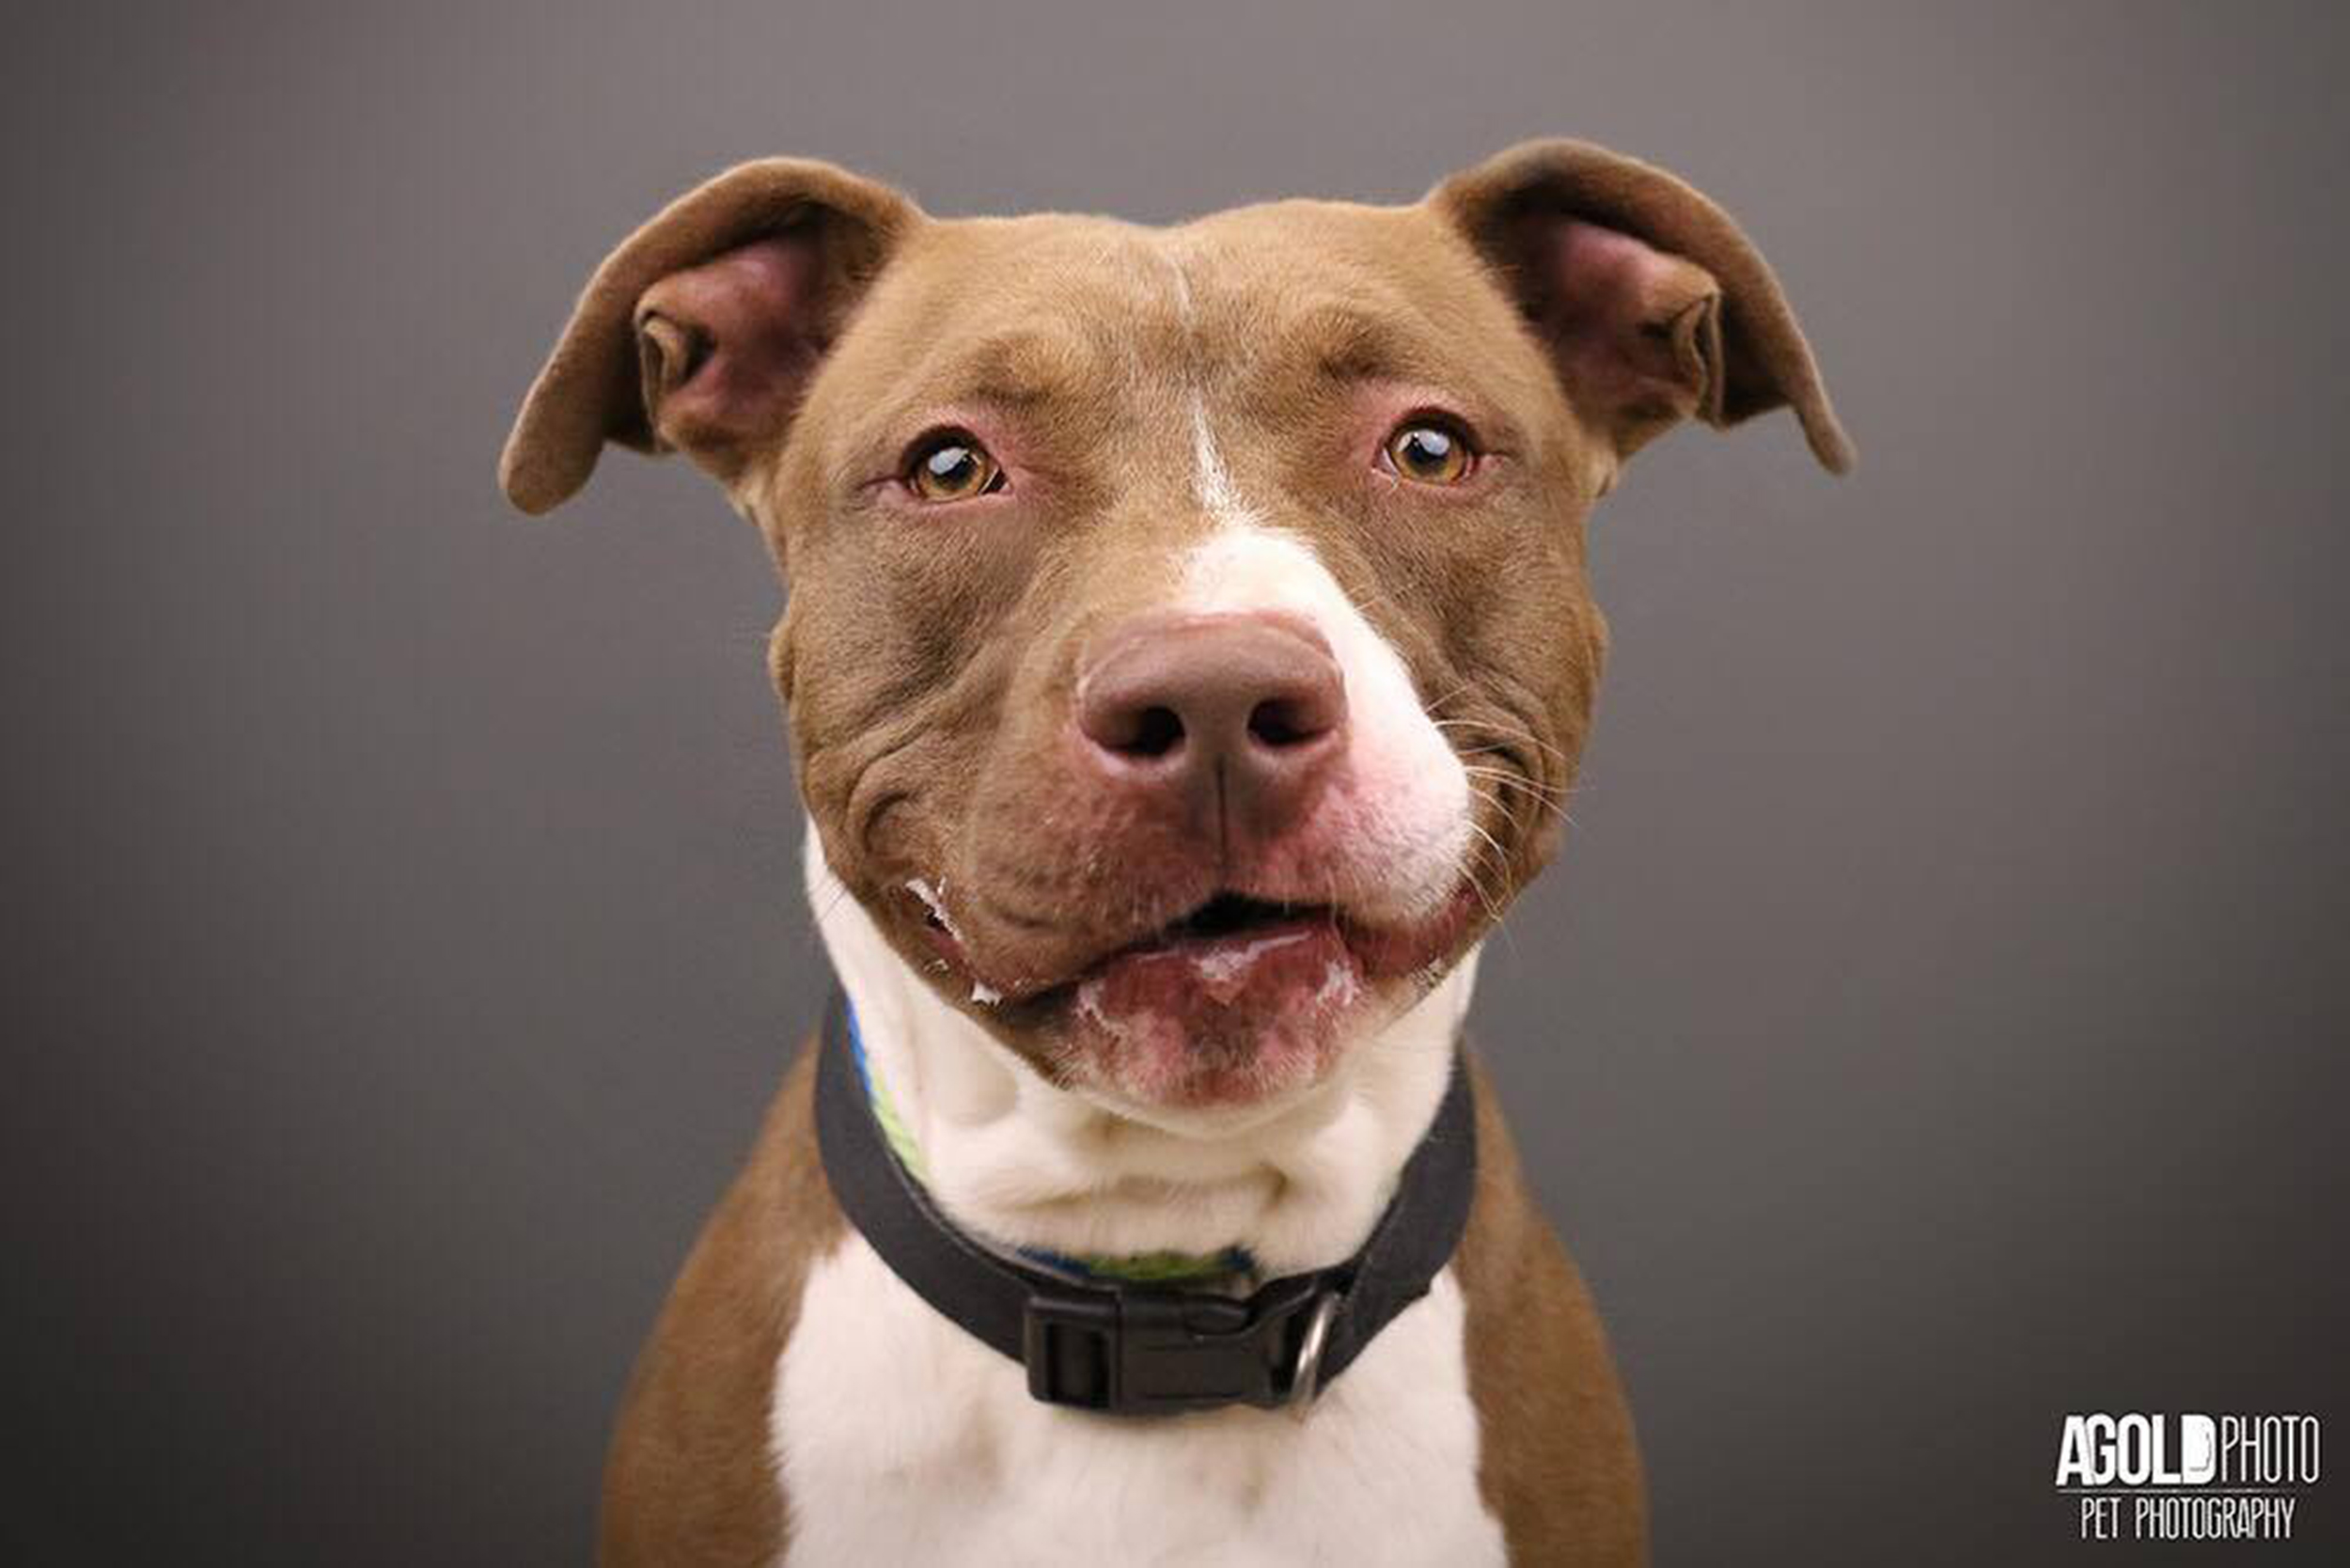 What is a pit bull? It's not actually a dog breed